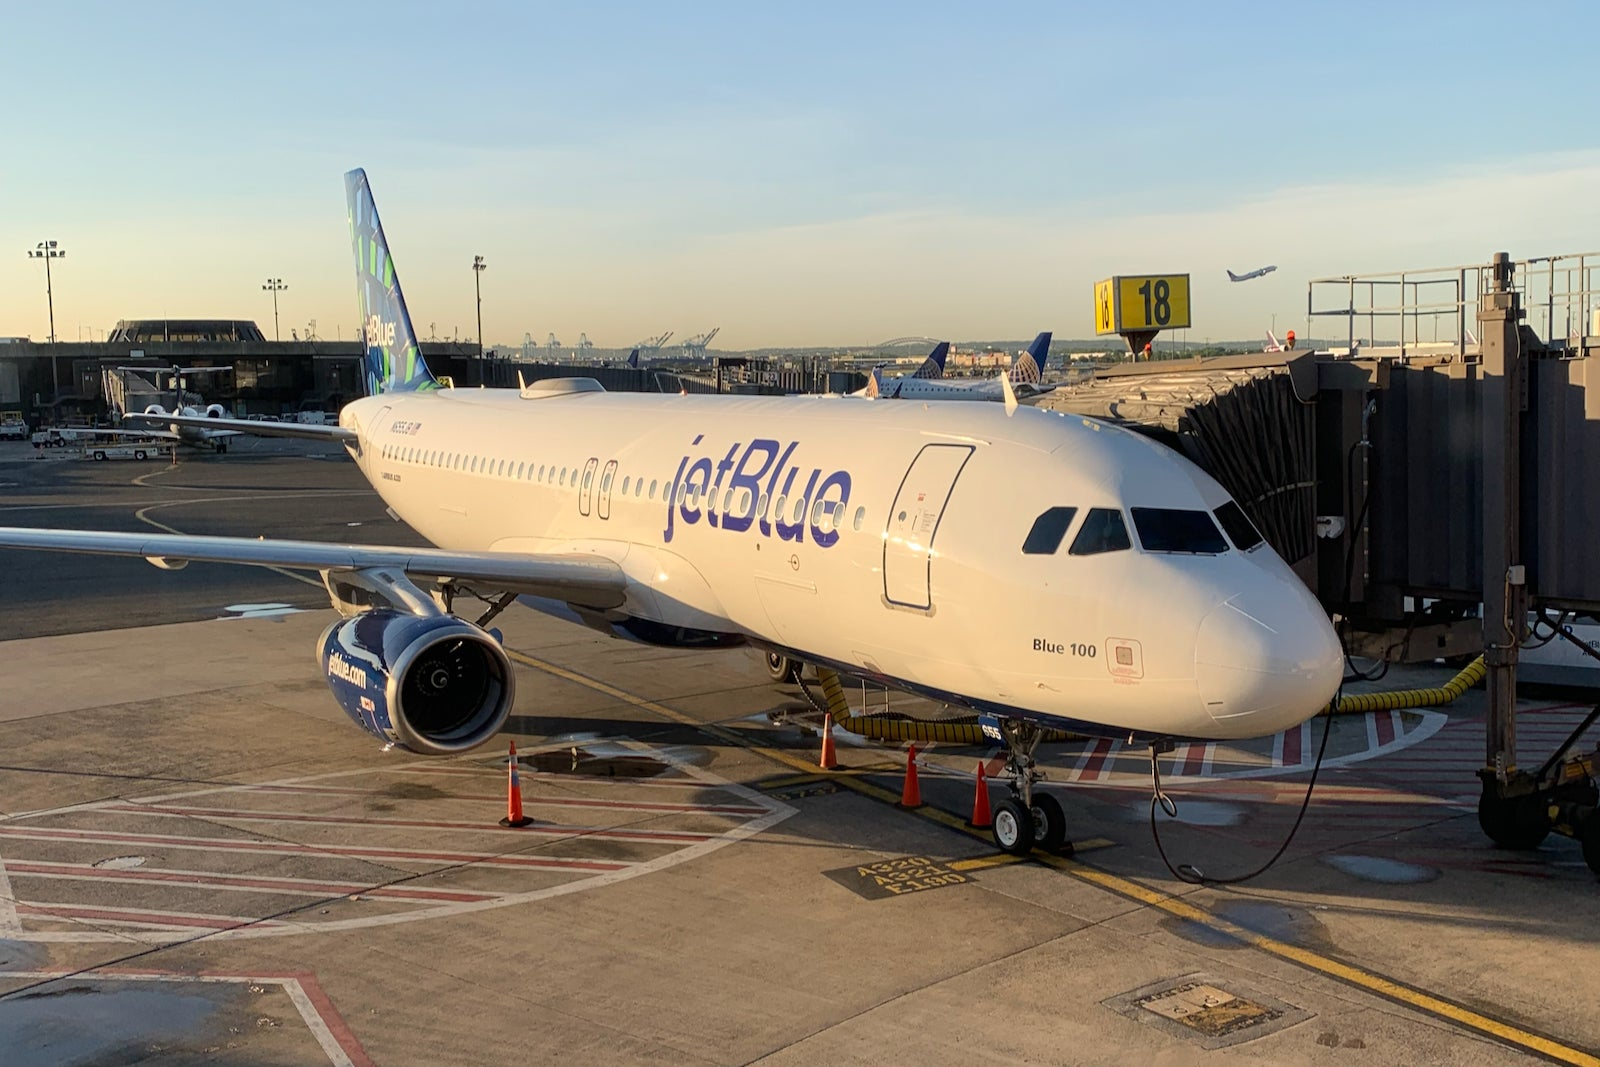 JetBlue adds 4 new cities, including Miami, in 24-route expansion